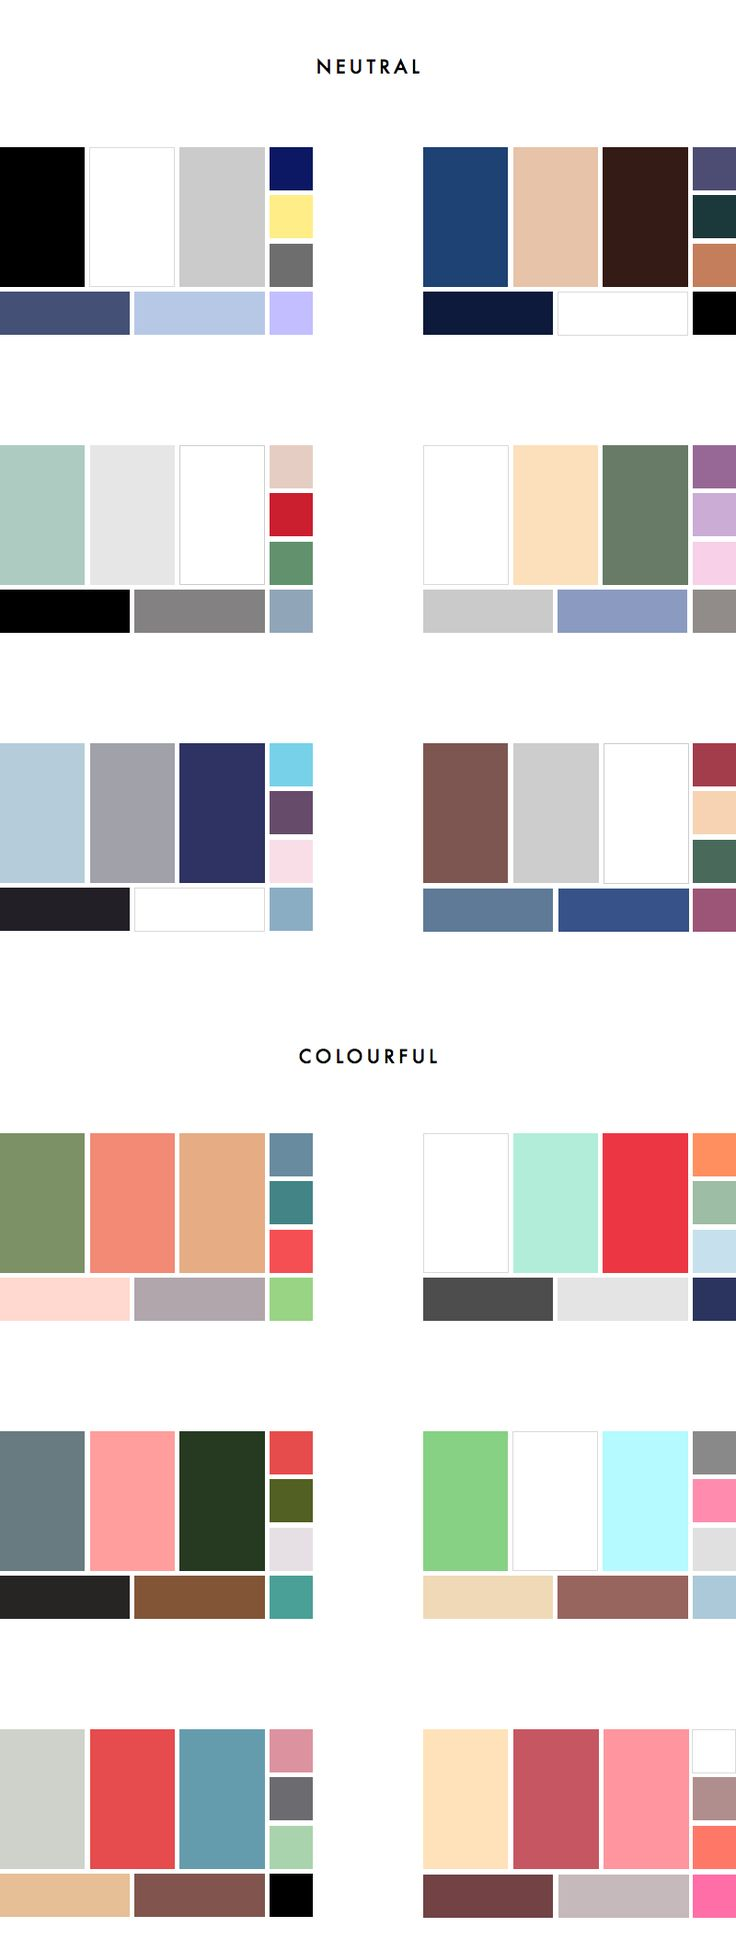 36 Colour Palettes For Your Wardrobe Part II Colourful Vs Neutral